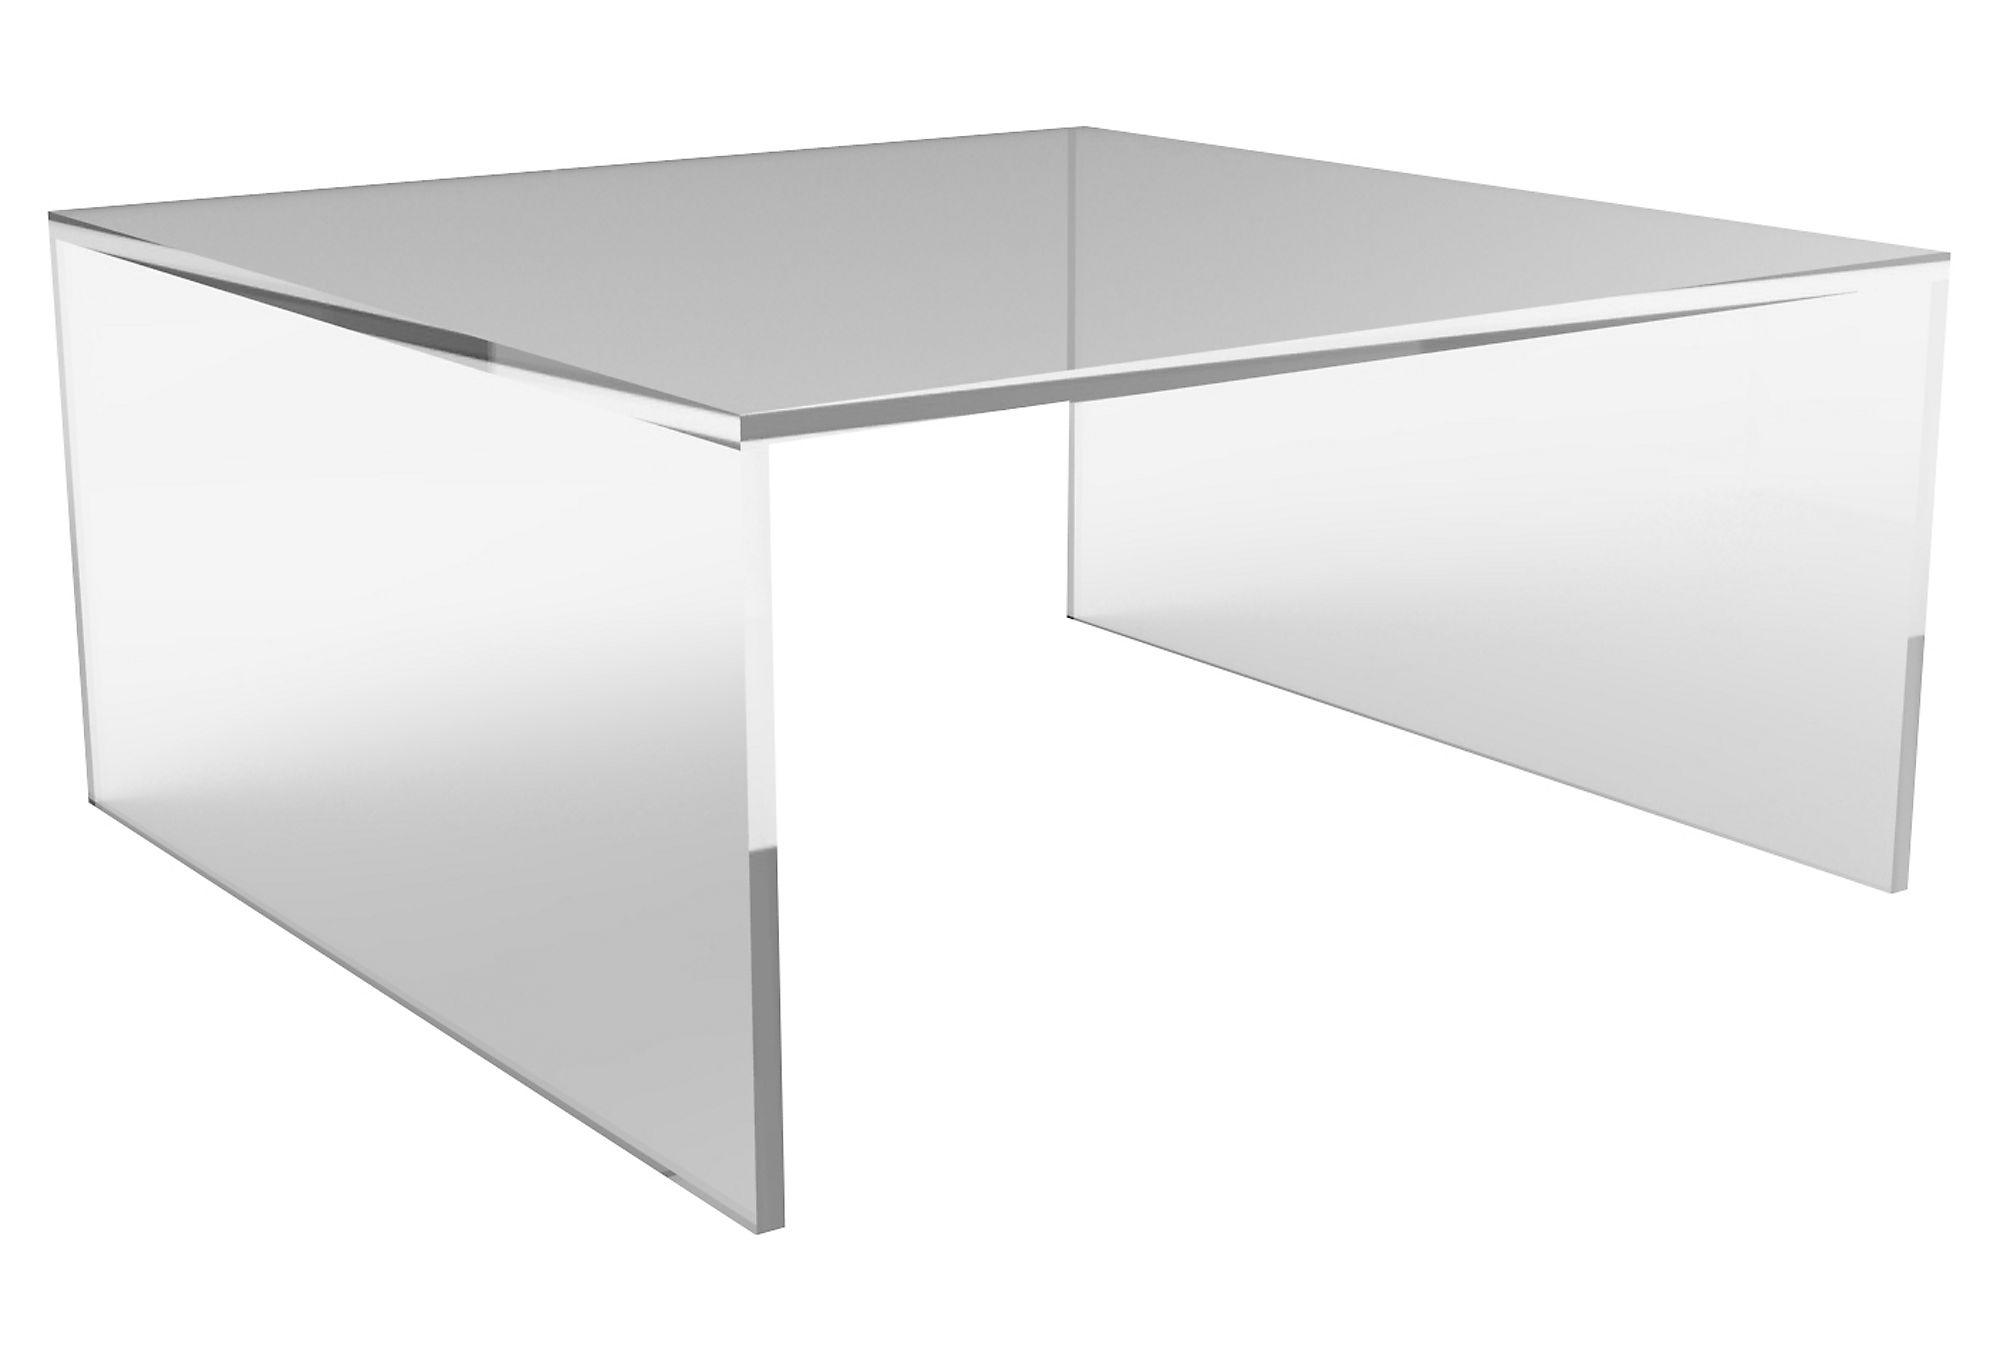 Brickell Square Coffee Table Acrylic From One Kings Lane